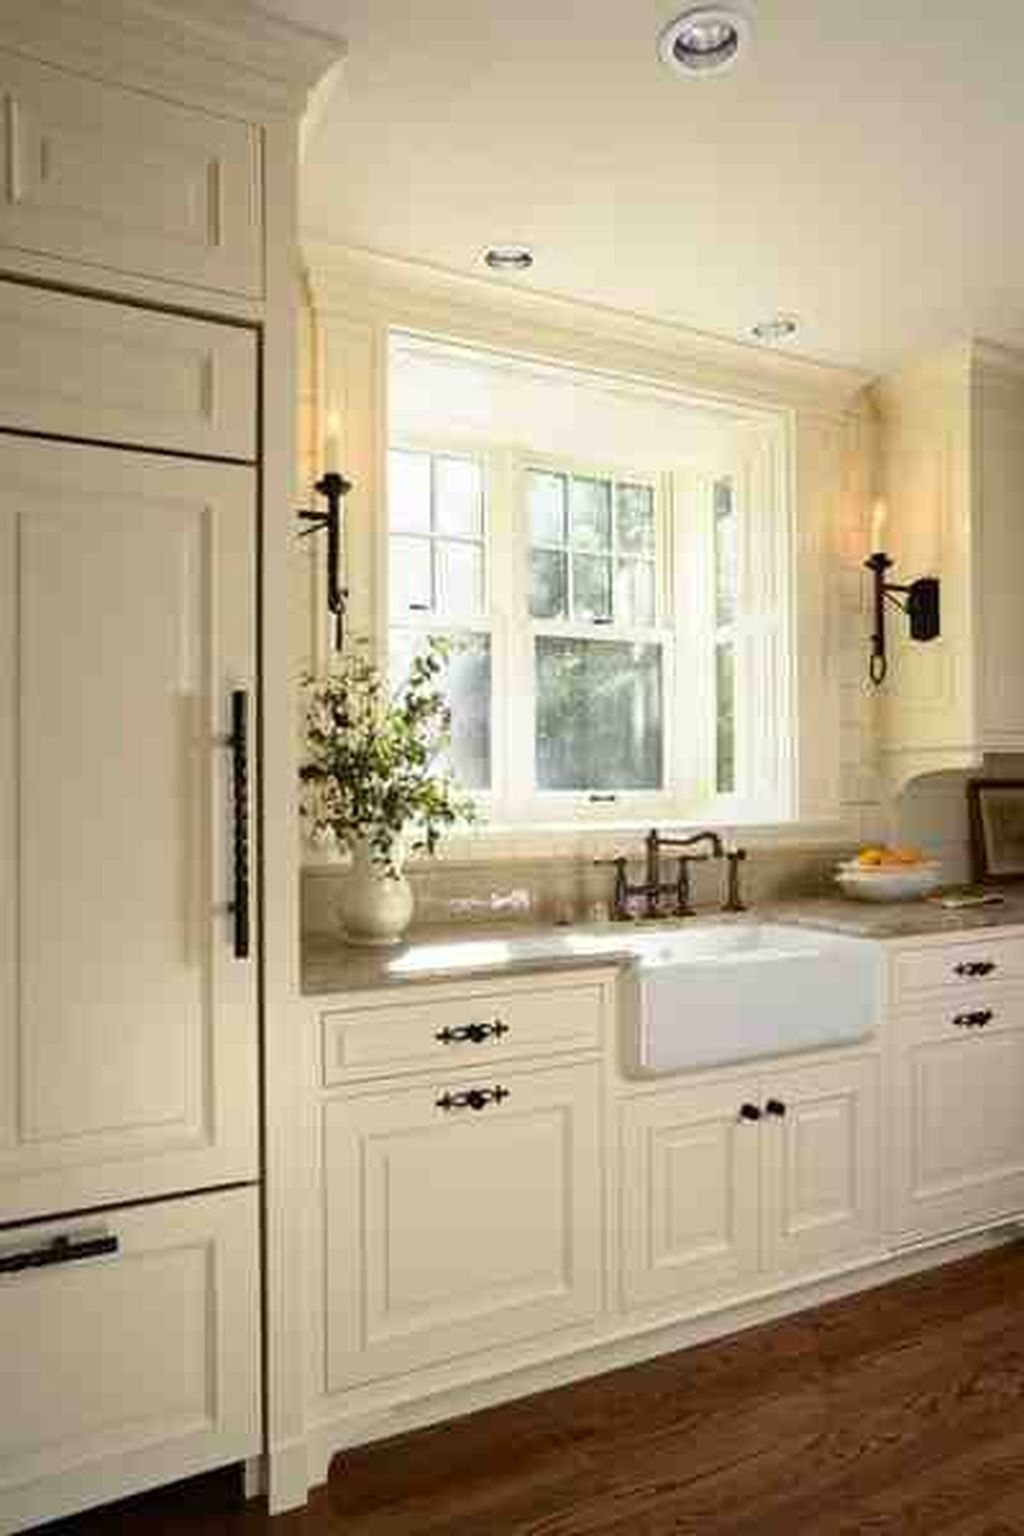 Inspiring Traditional Victorian Kitchen Remodel Ideas 03